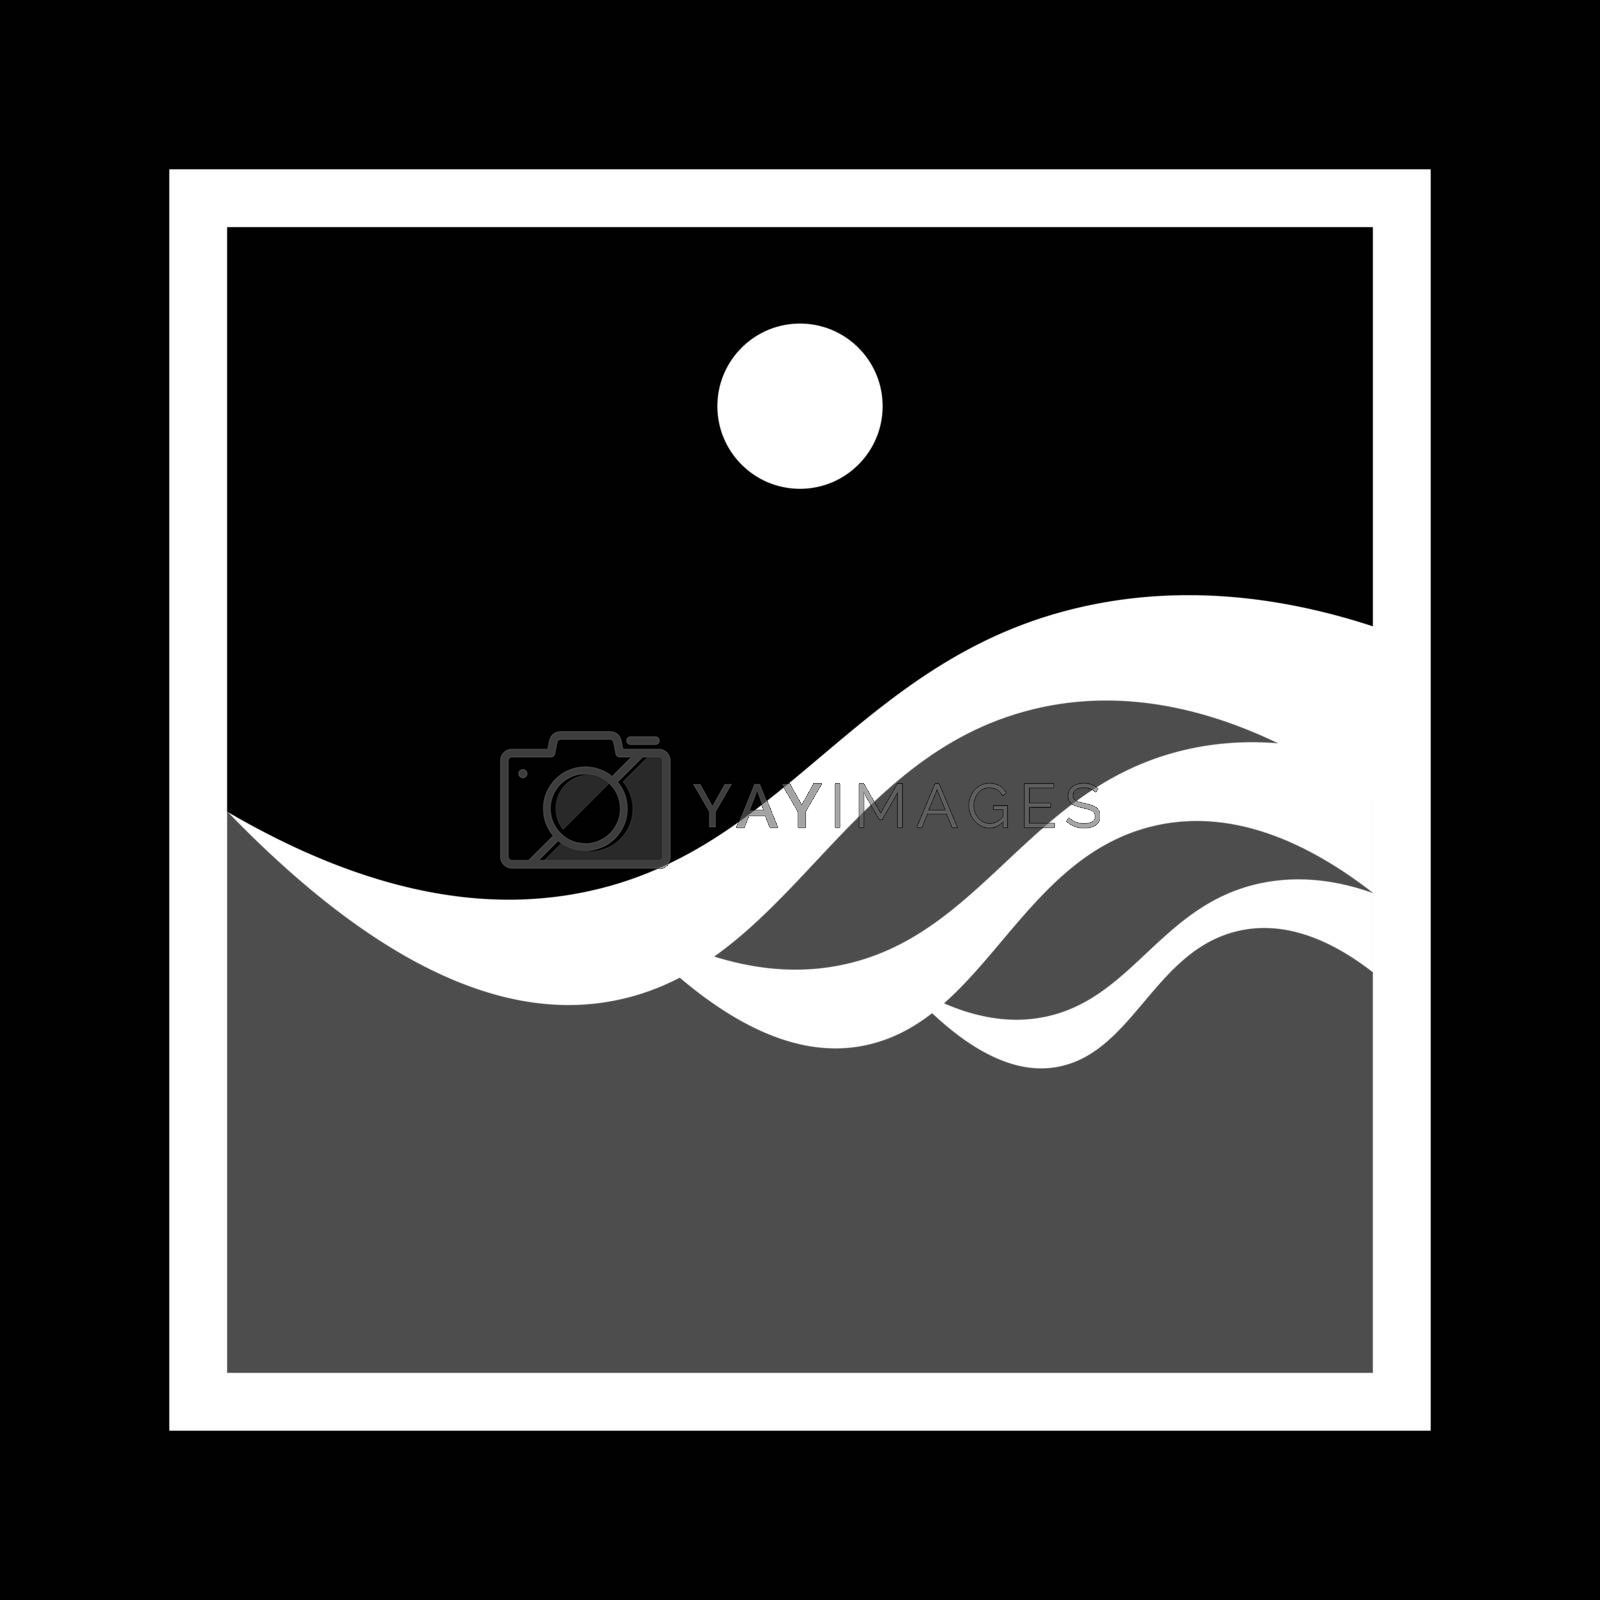 simple monochrome icon with sea waves and moon by paranoido